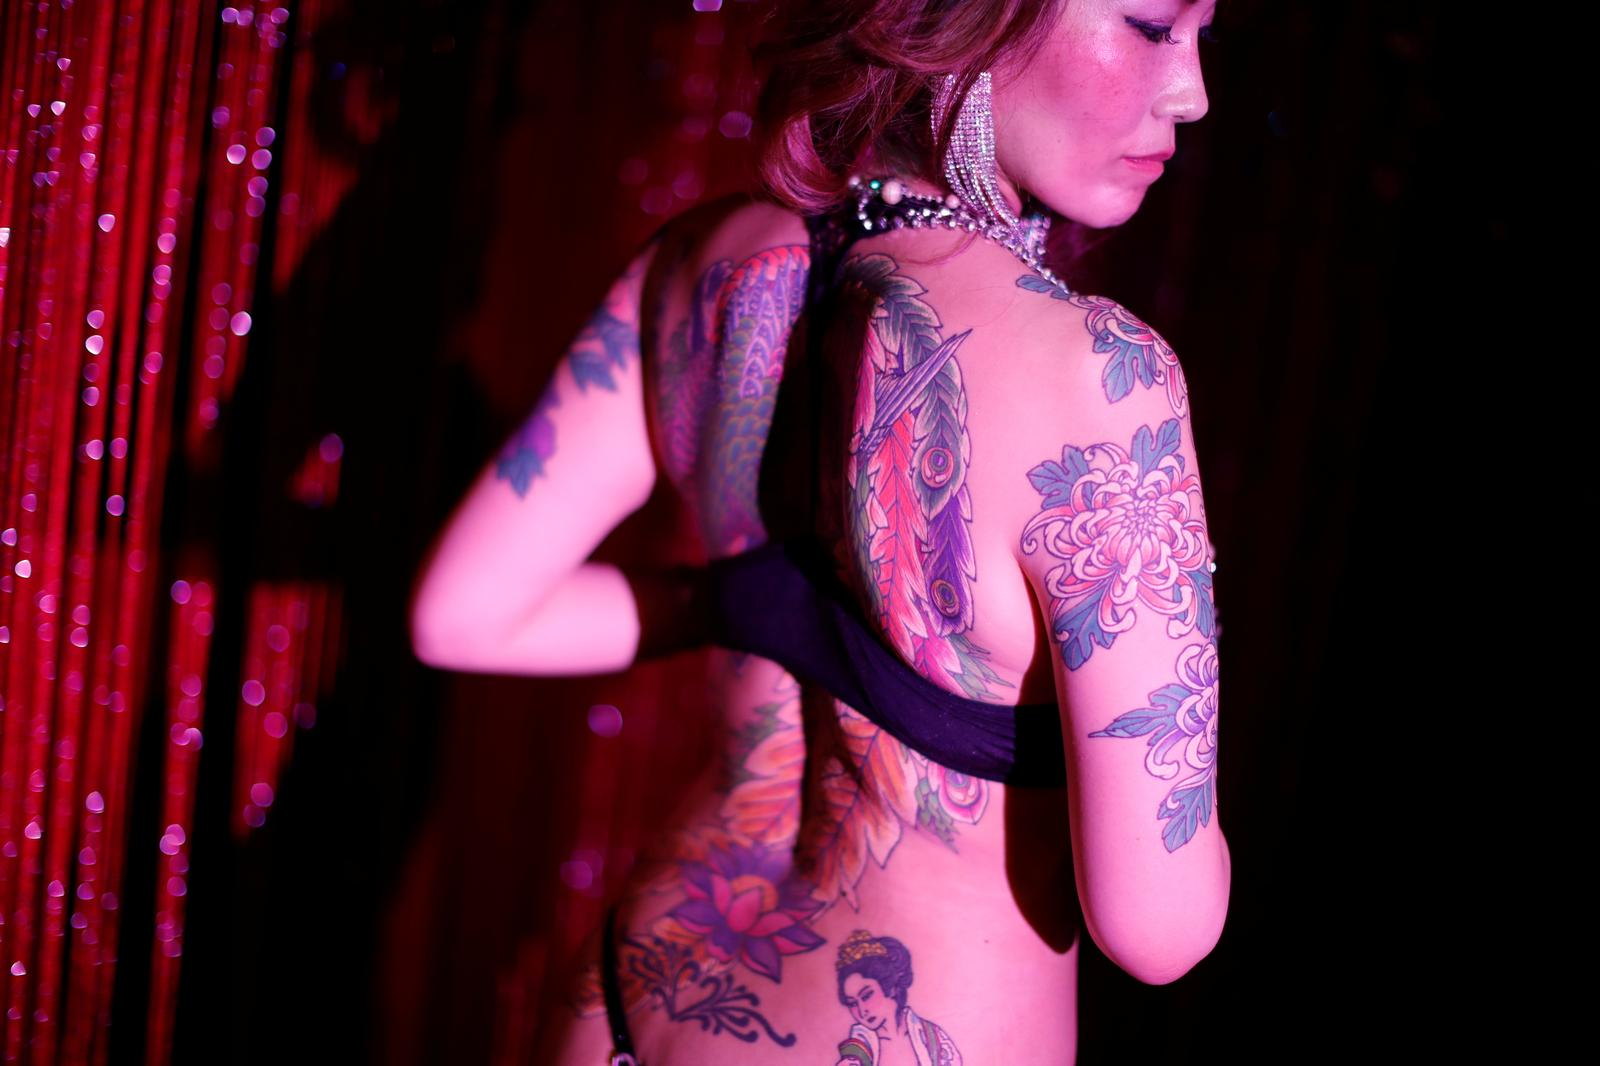 Burlesque dancer Aya Yumiko, 40, who performs under the stage name 'Aya Mermaid' poses with her tattoos at a bar she performs at in Tokyo, Japan, April 25, 2020. Photo: Reuters